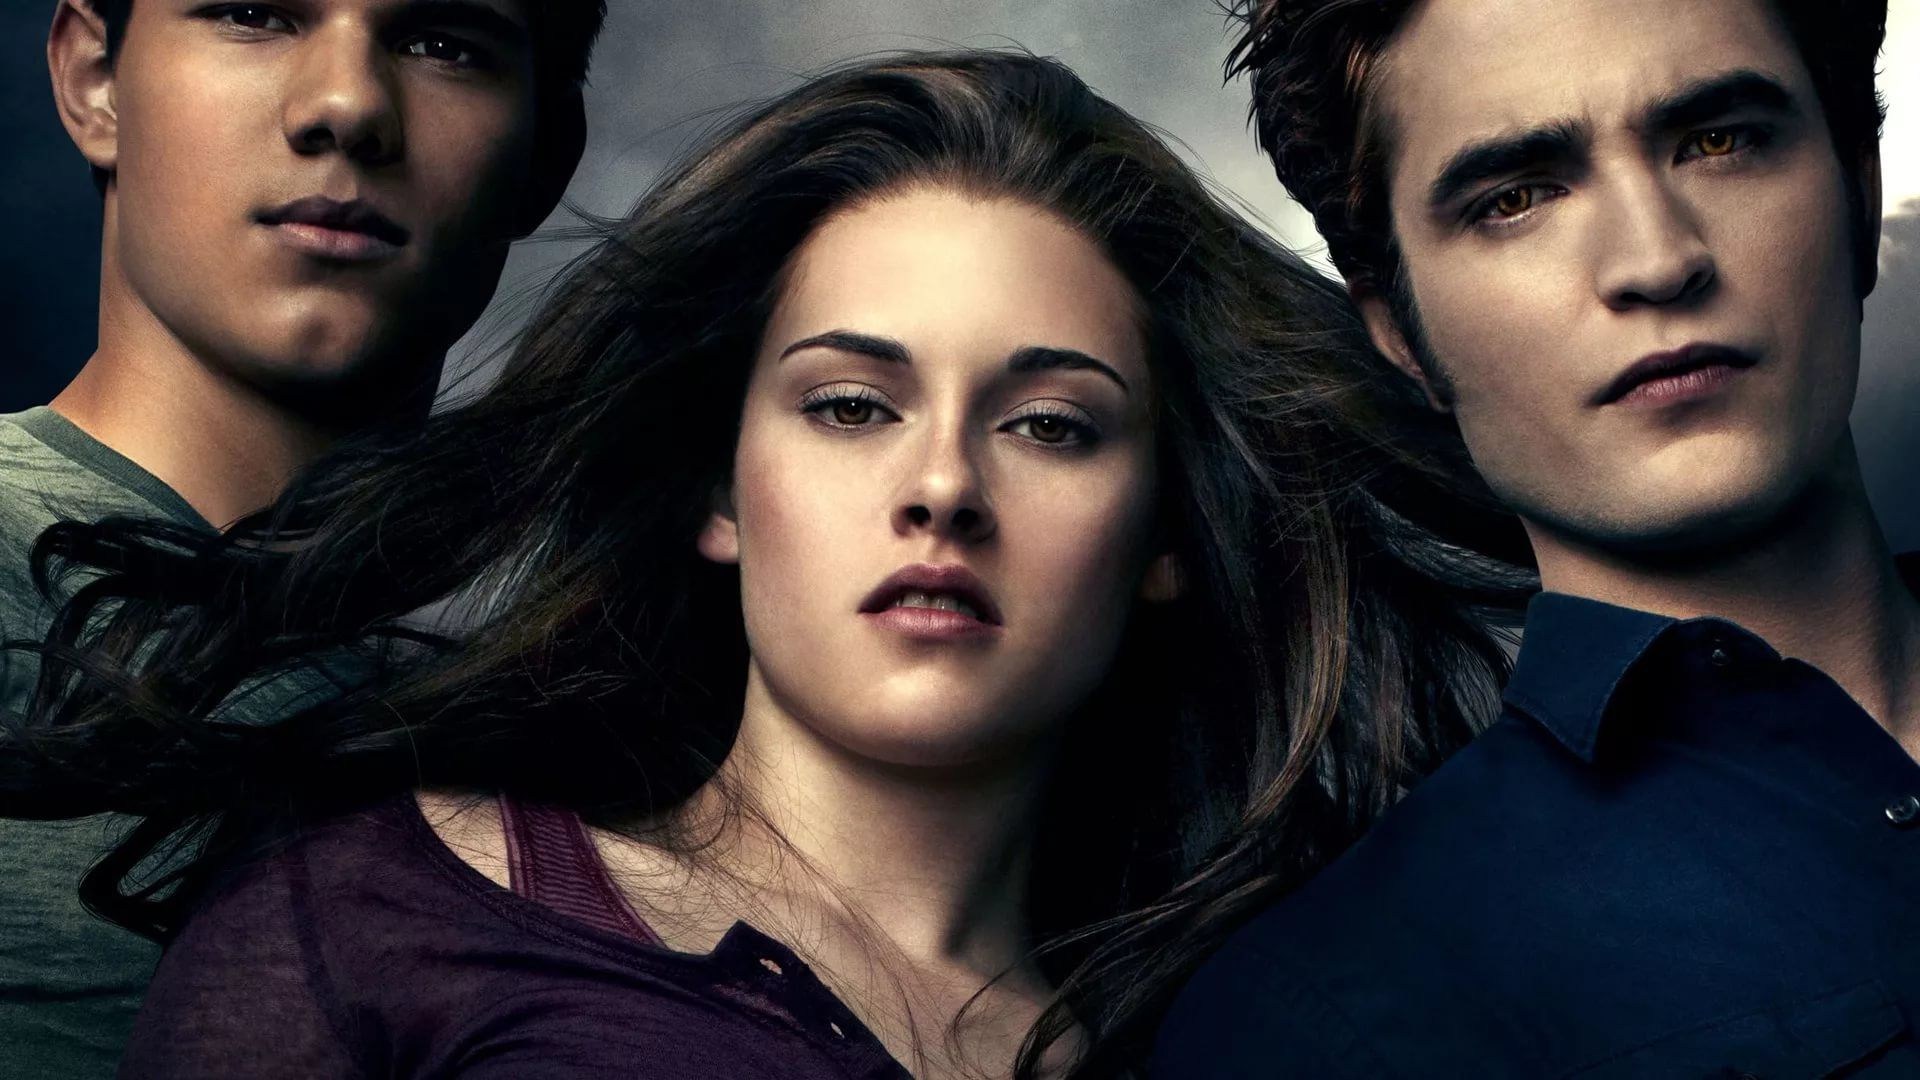 Twilight Saga Free Wallpaper and Background